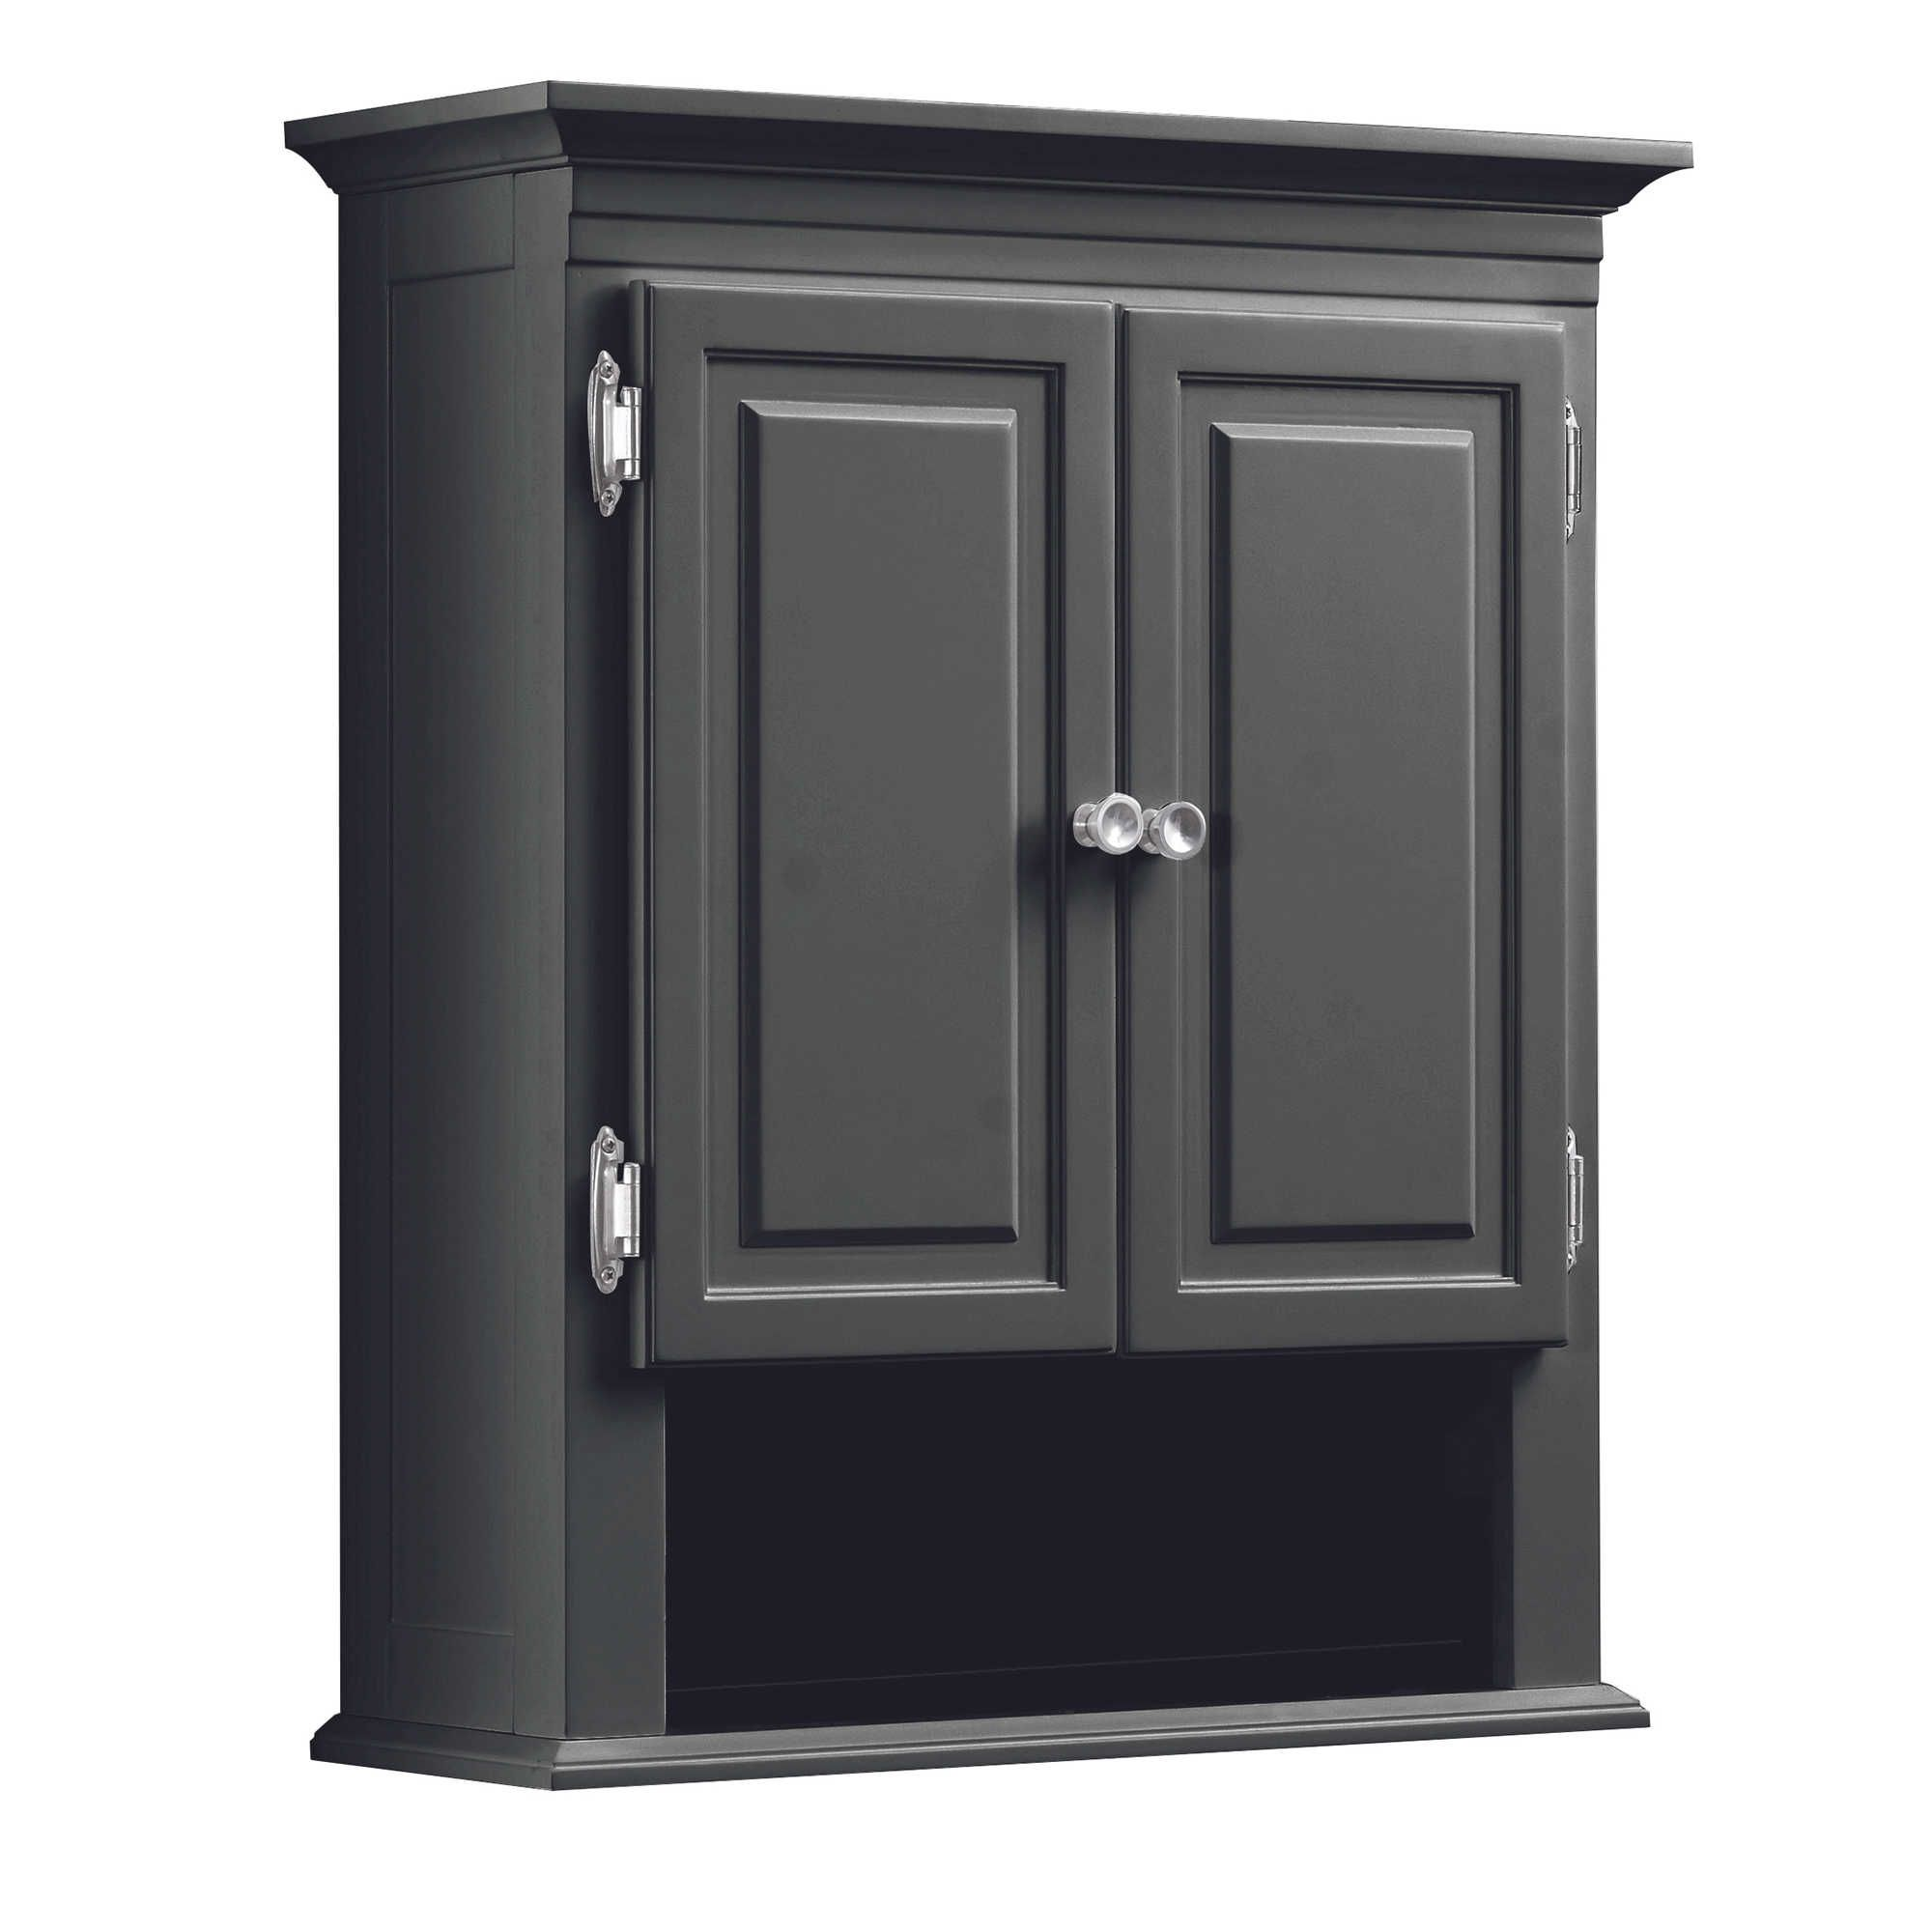 Wakefield No Tools Wall Cabinet Bed Bath Beyond Cabinet Above Toilet Wall Cabinet Bathroom Cabinets Over Toilet